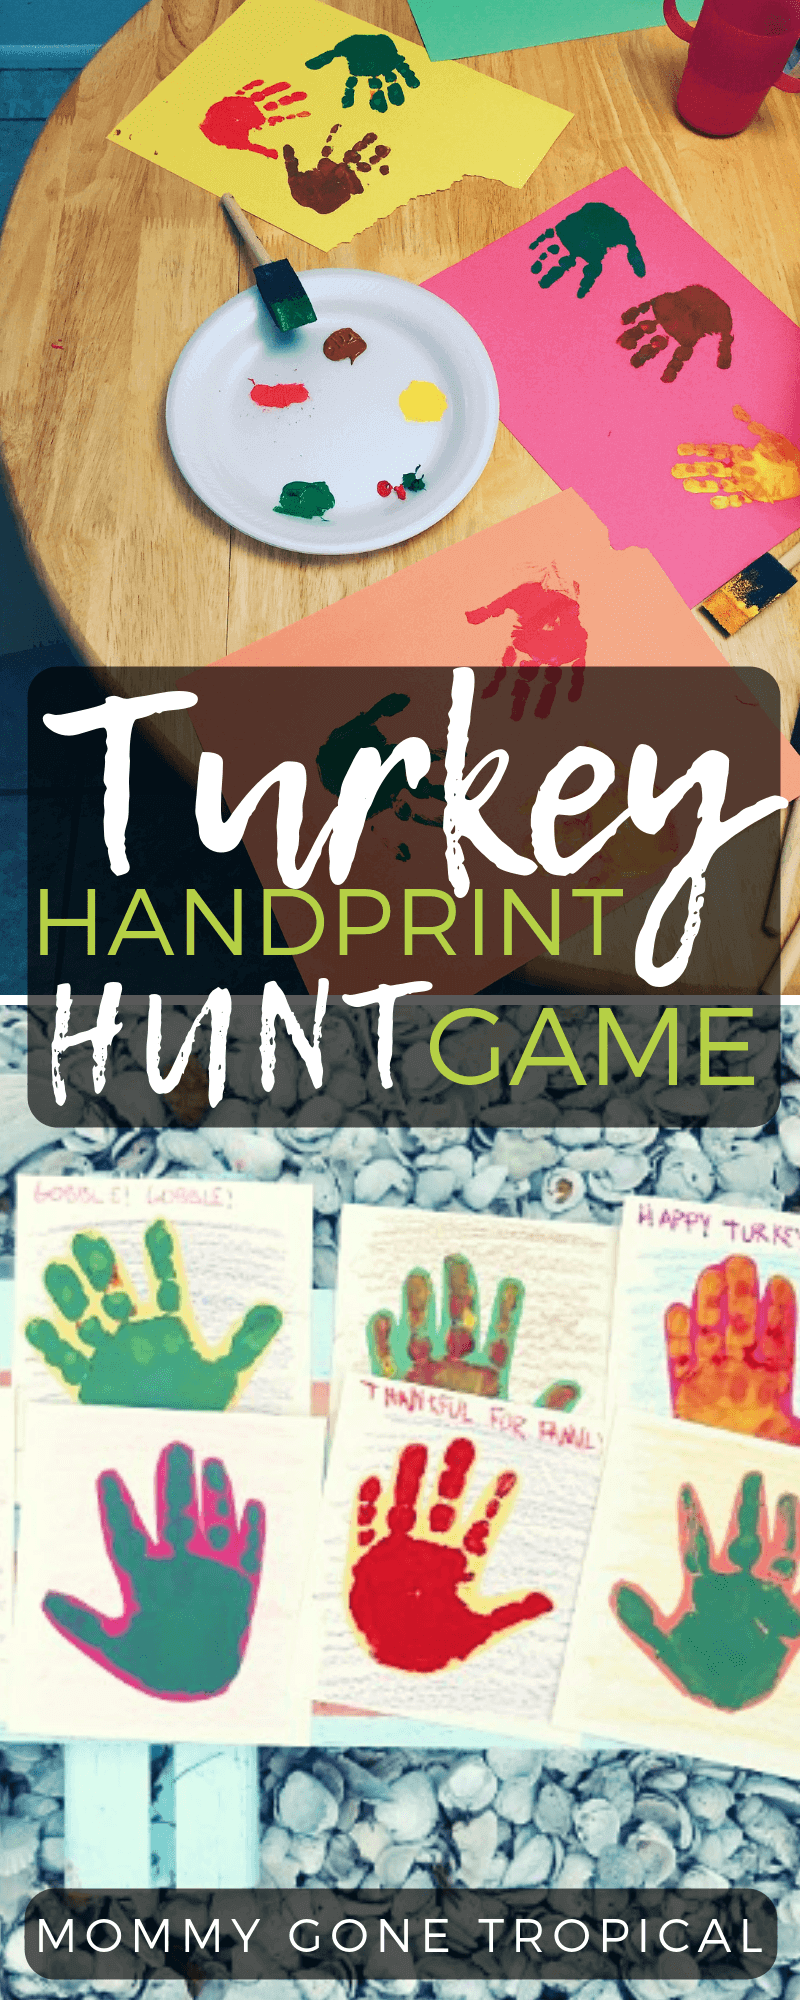 Turkey Handprint Hunt Game with kids' handprints #handprintgames #thanksgivinggames